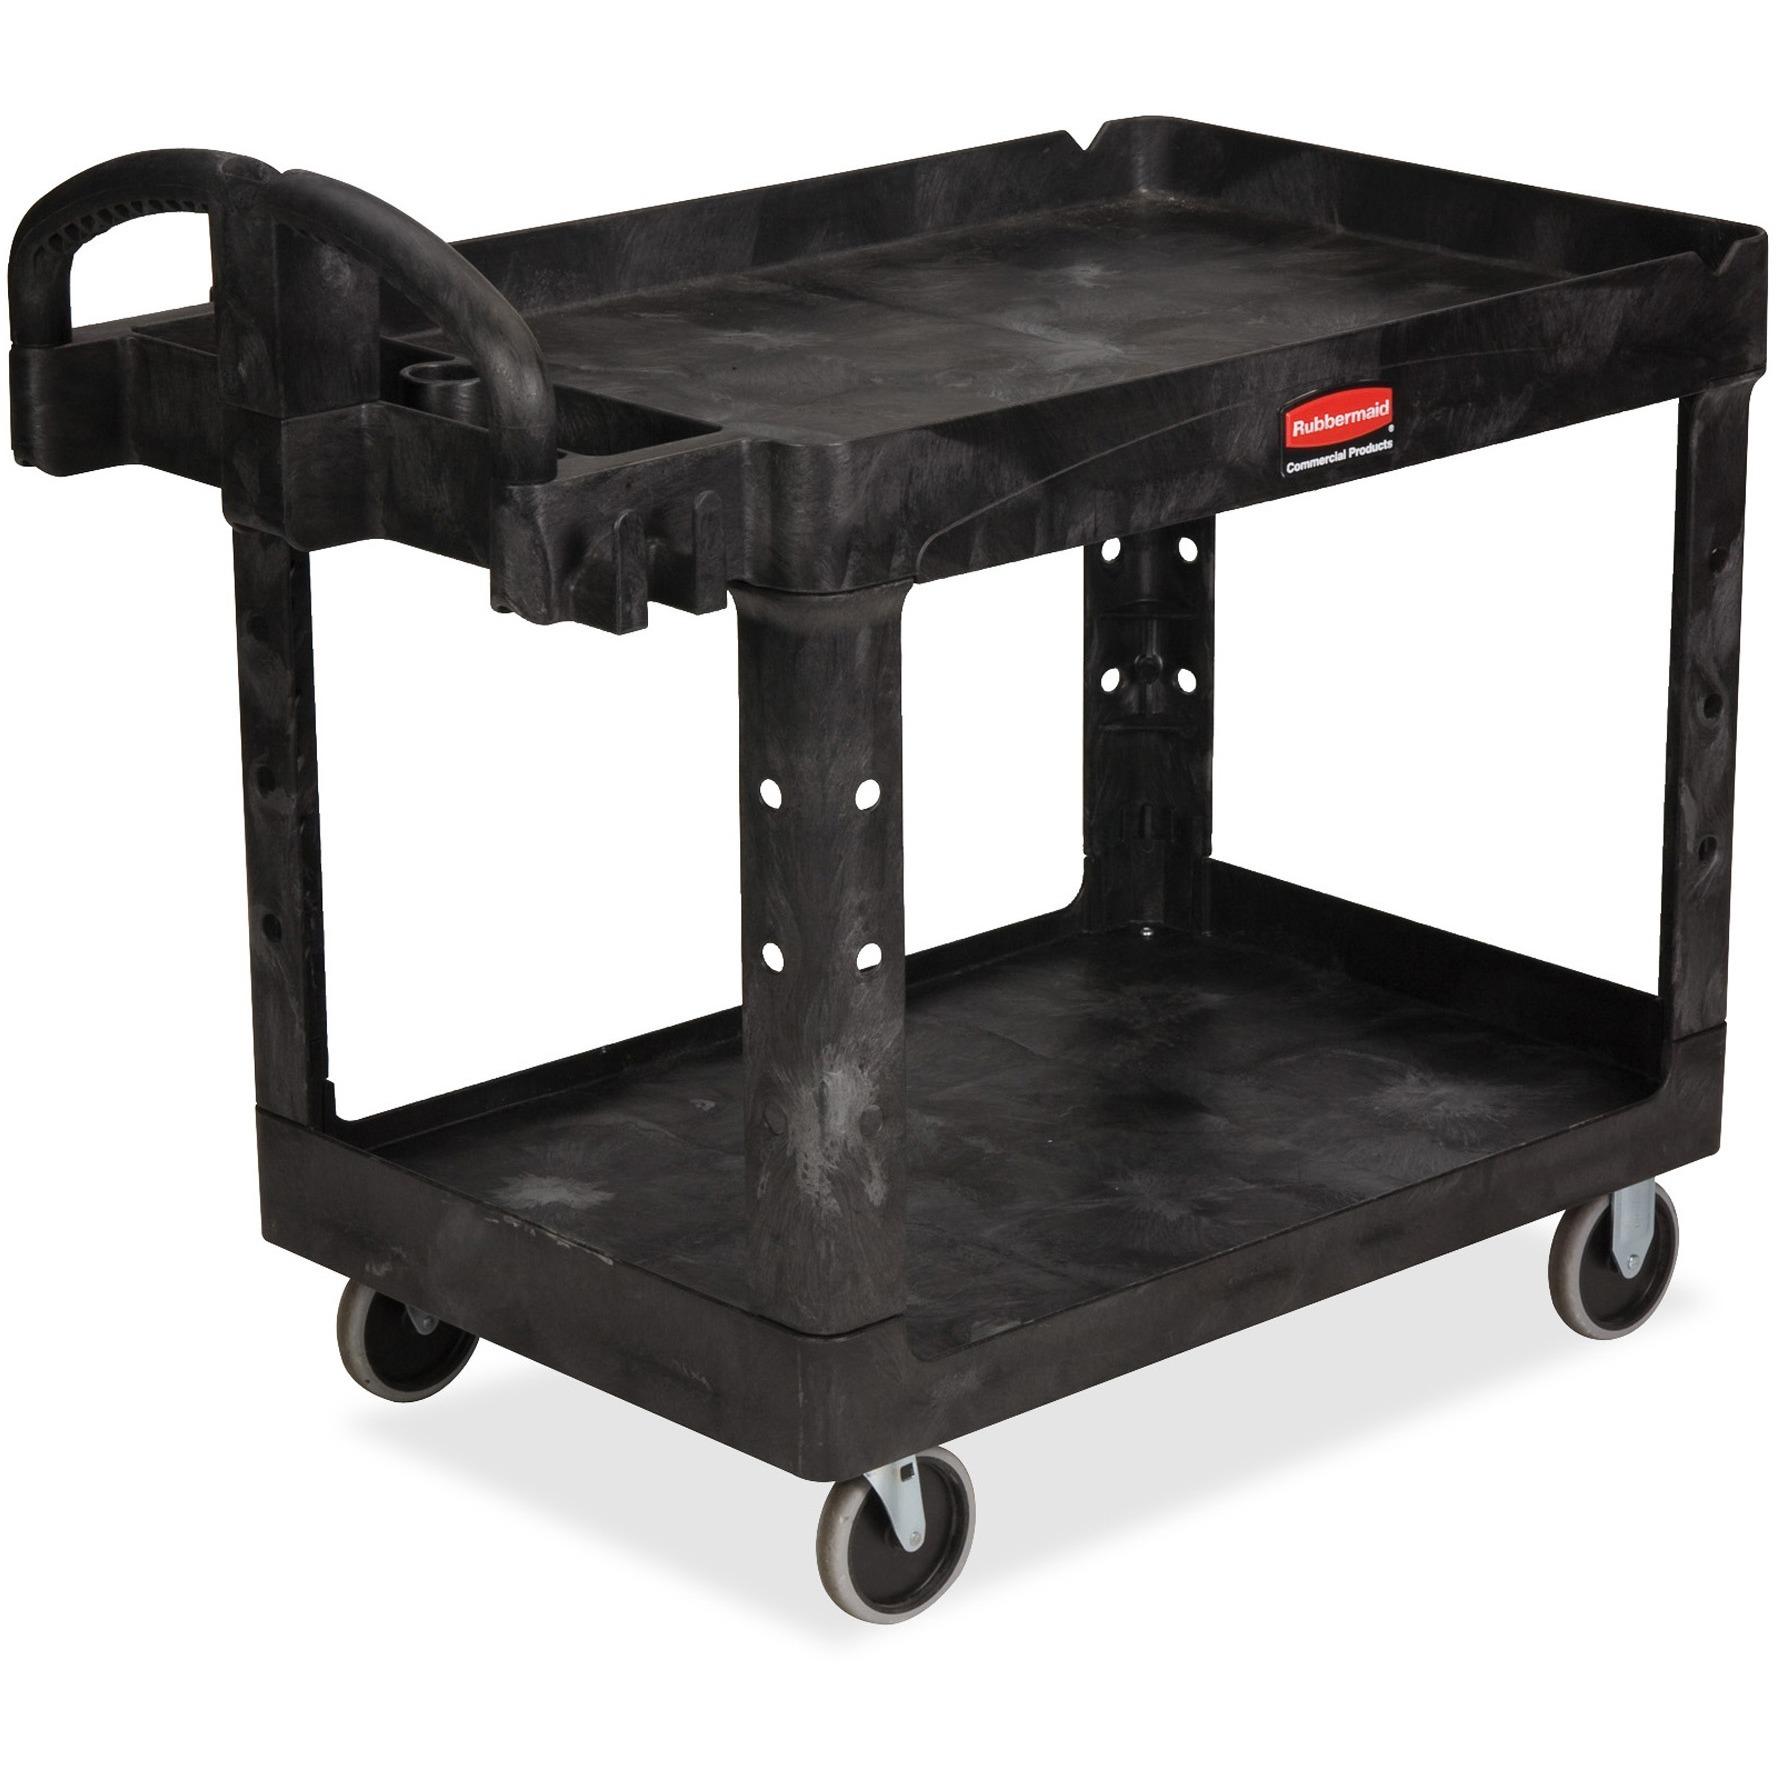 Rubbermaid Commercial, RCP452088BK, Medium Utility Cart with Lipped Shelf, 1 Each, Black